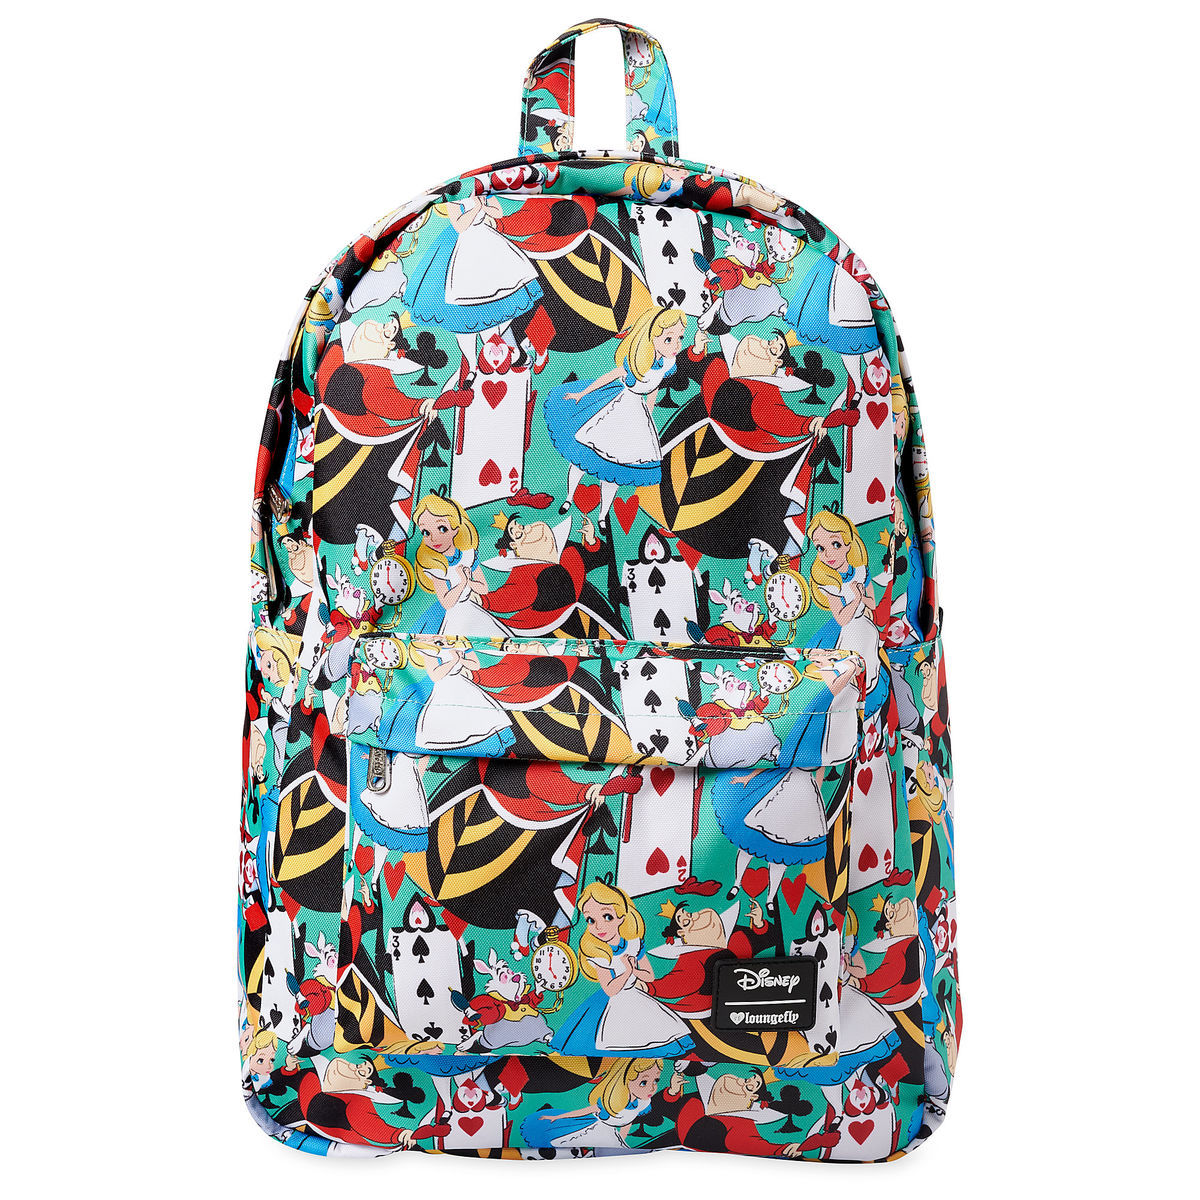 Product Image of Alice in Wonderland Backpack by Loungefly   1 15e2f9305c238